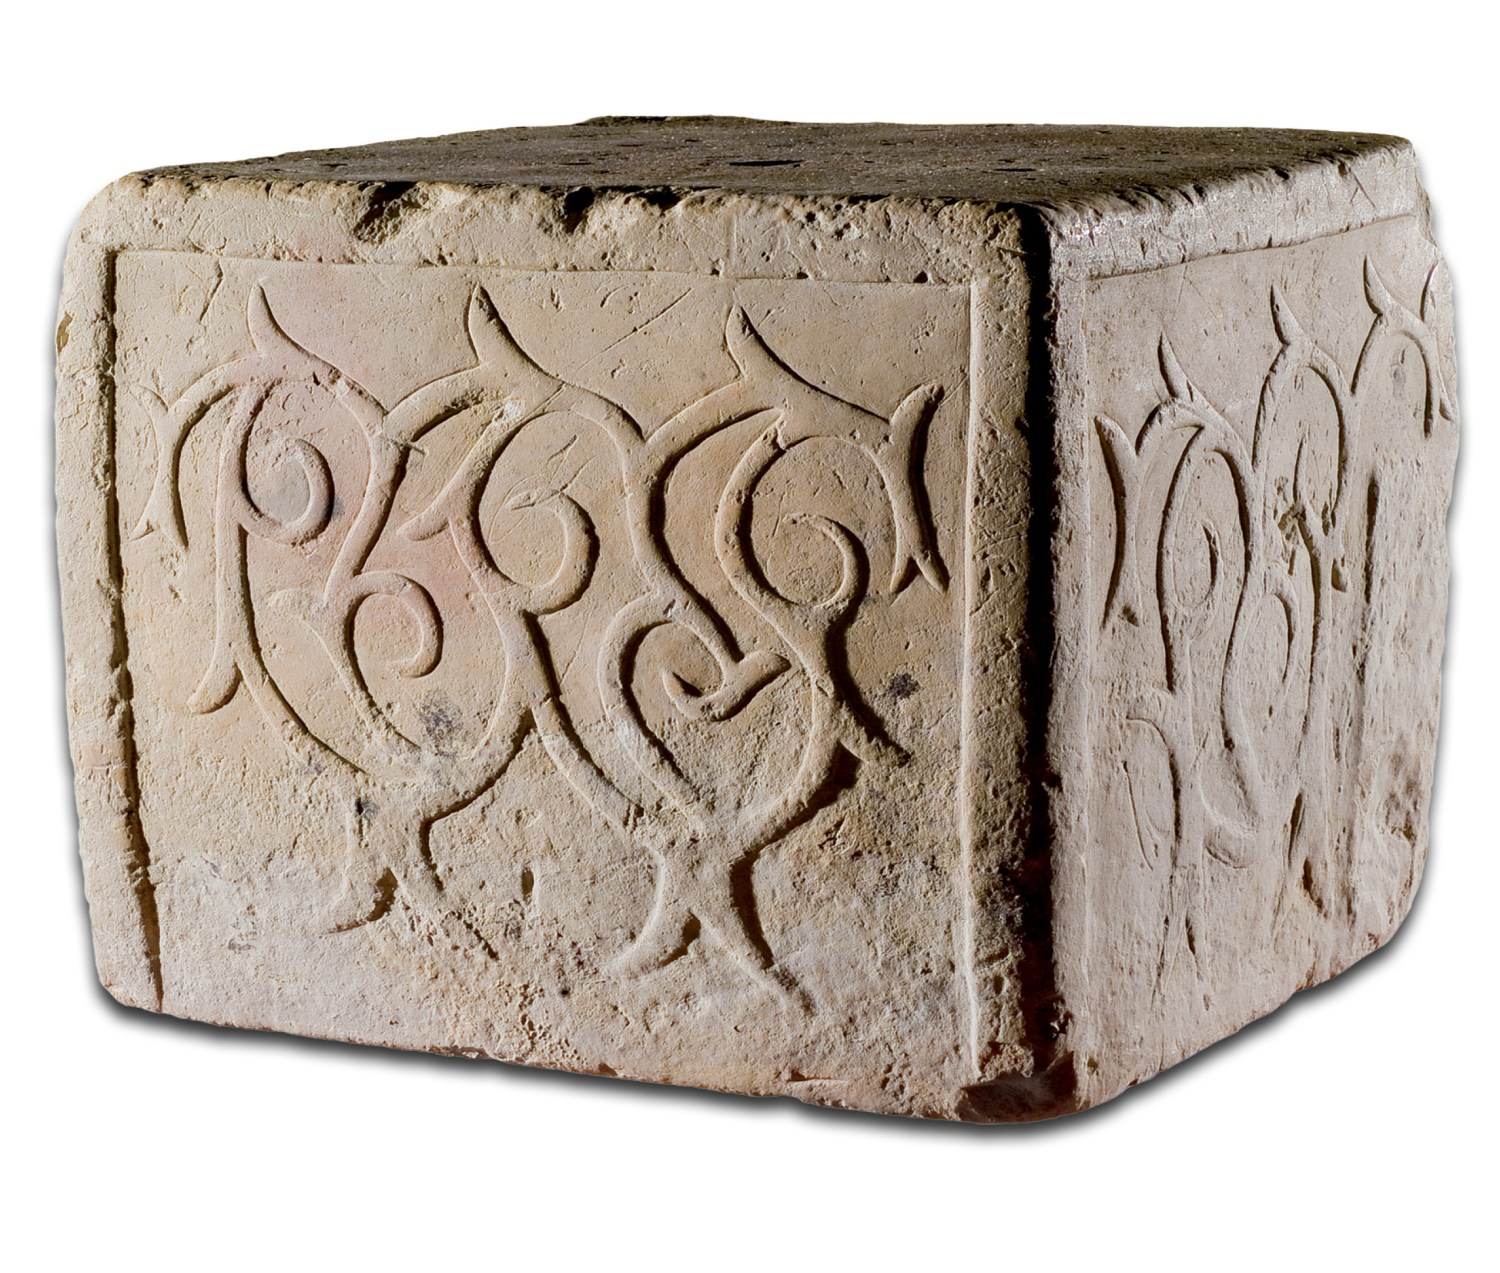 Above A stone block from the Tarxien temples, decorated with a spiralling pattern, 3000-2450 BC. Size: c.80 x 80 x 80cm